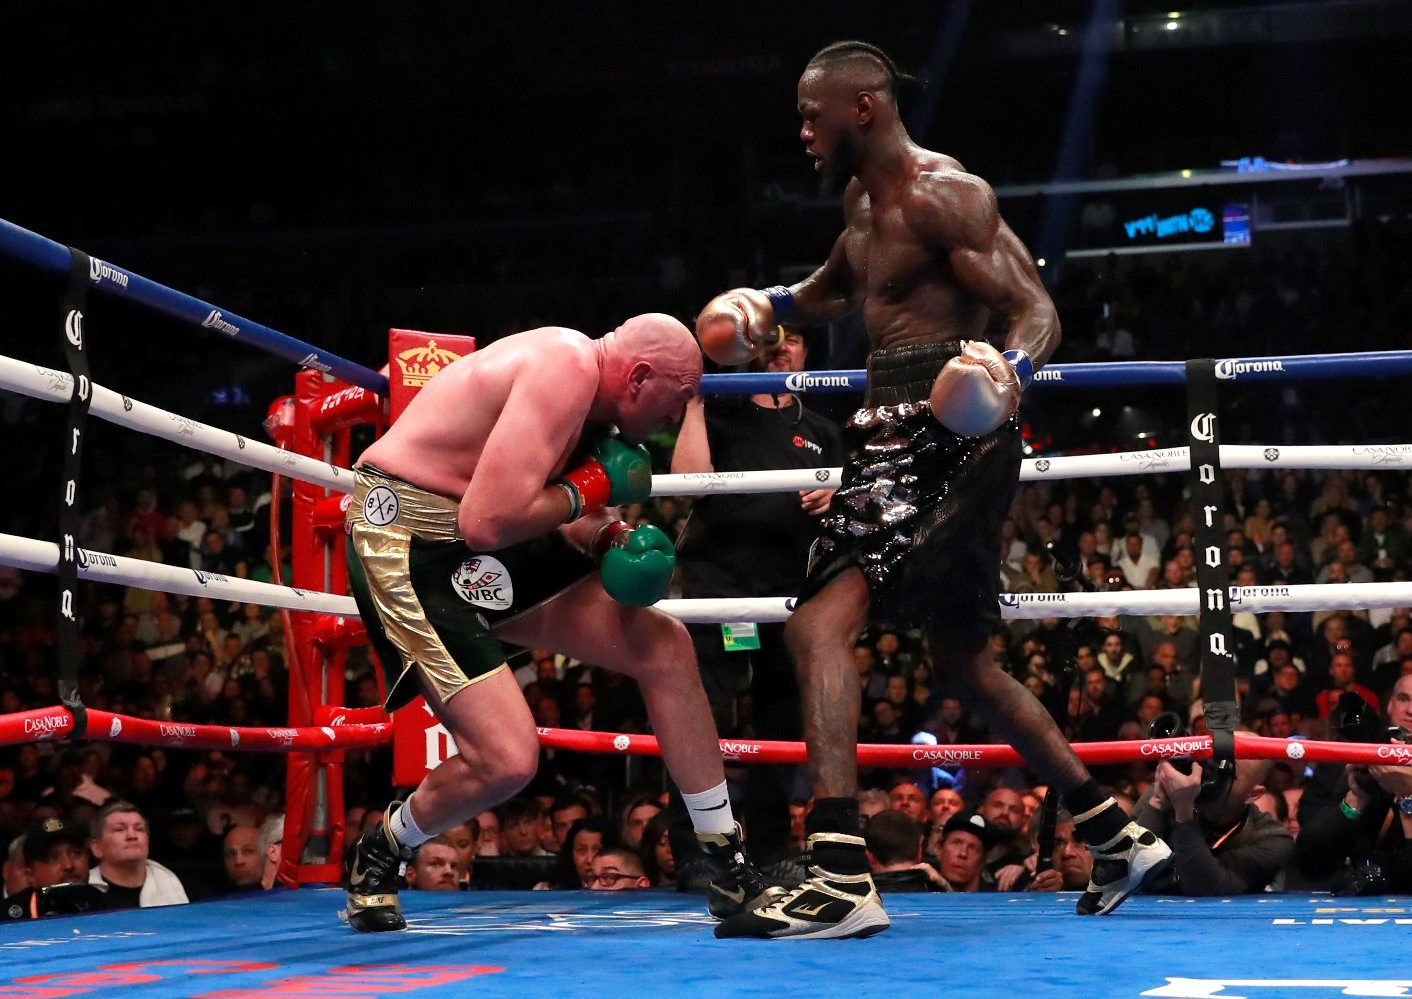 Boxing - Deontay Wilder v Tyson Fury - WBC World Heavyweight Title - Staples Centre, Los Angeles, United States - December 1, 2018  Deontay Wilder knocks down Tyson Fury   Action Images via Reuters/Andrew Couldridge